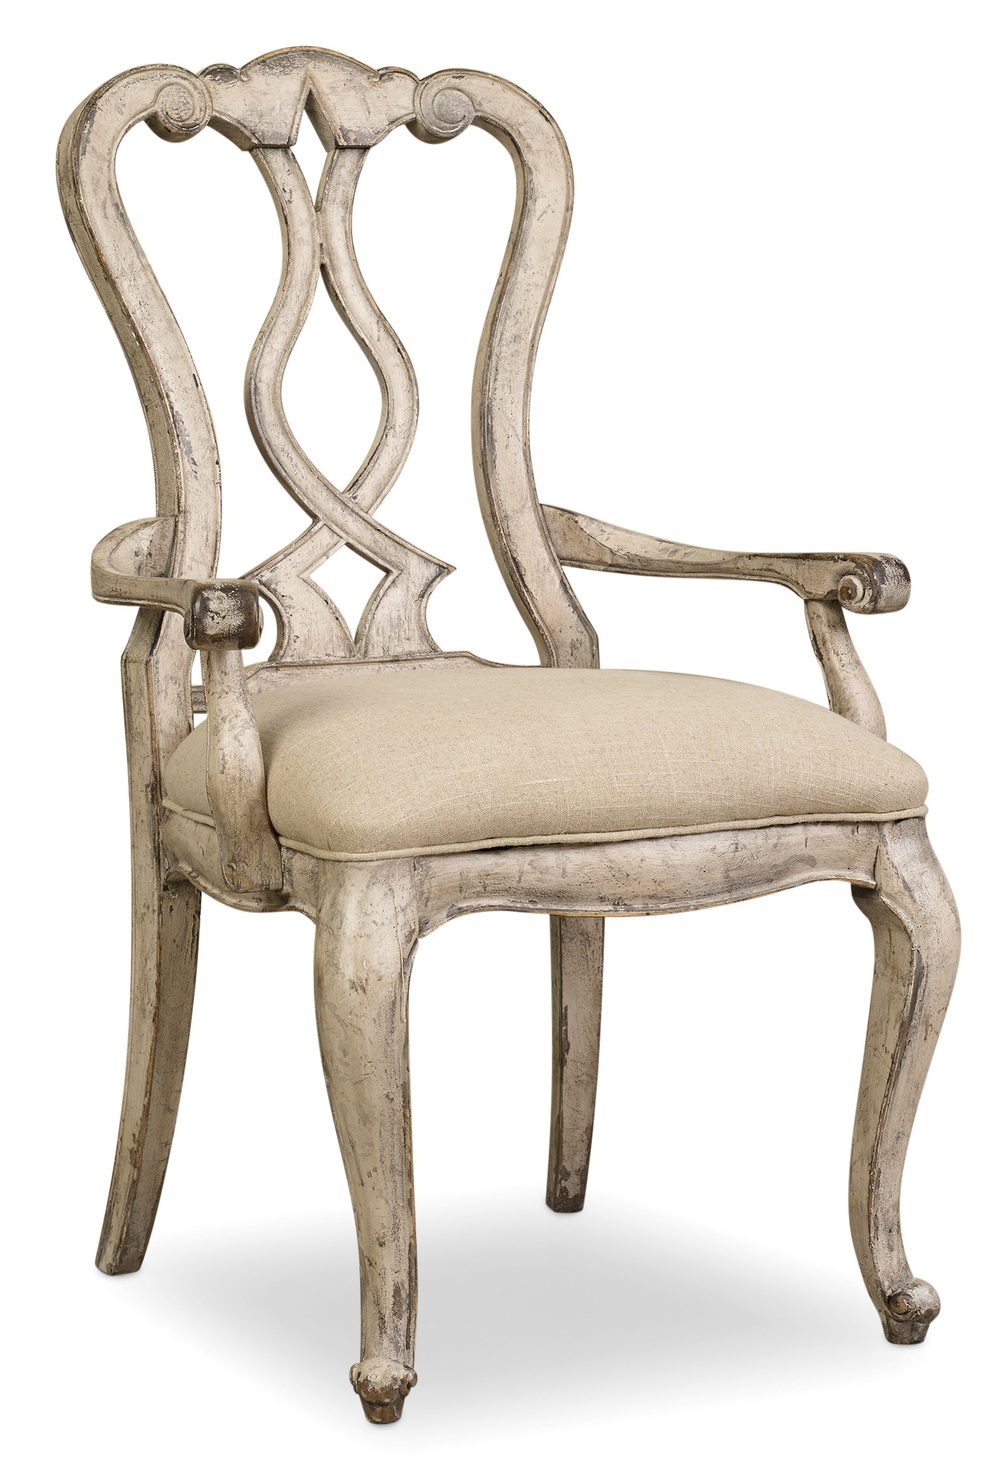 HOOKER FURNITURE CO - Splatback Arm Chair